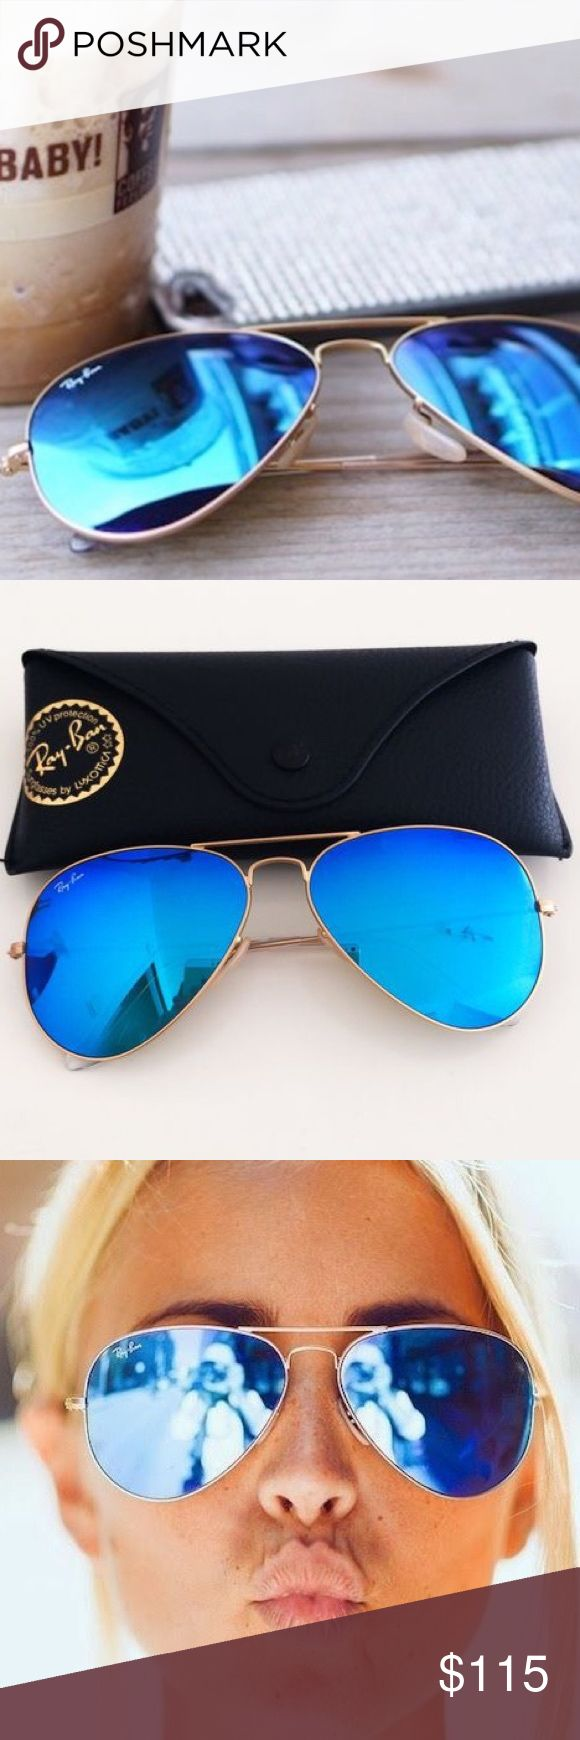 wholesale ray ban jackie ohh